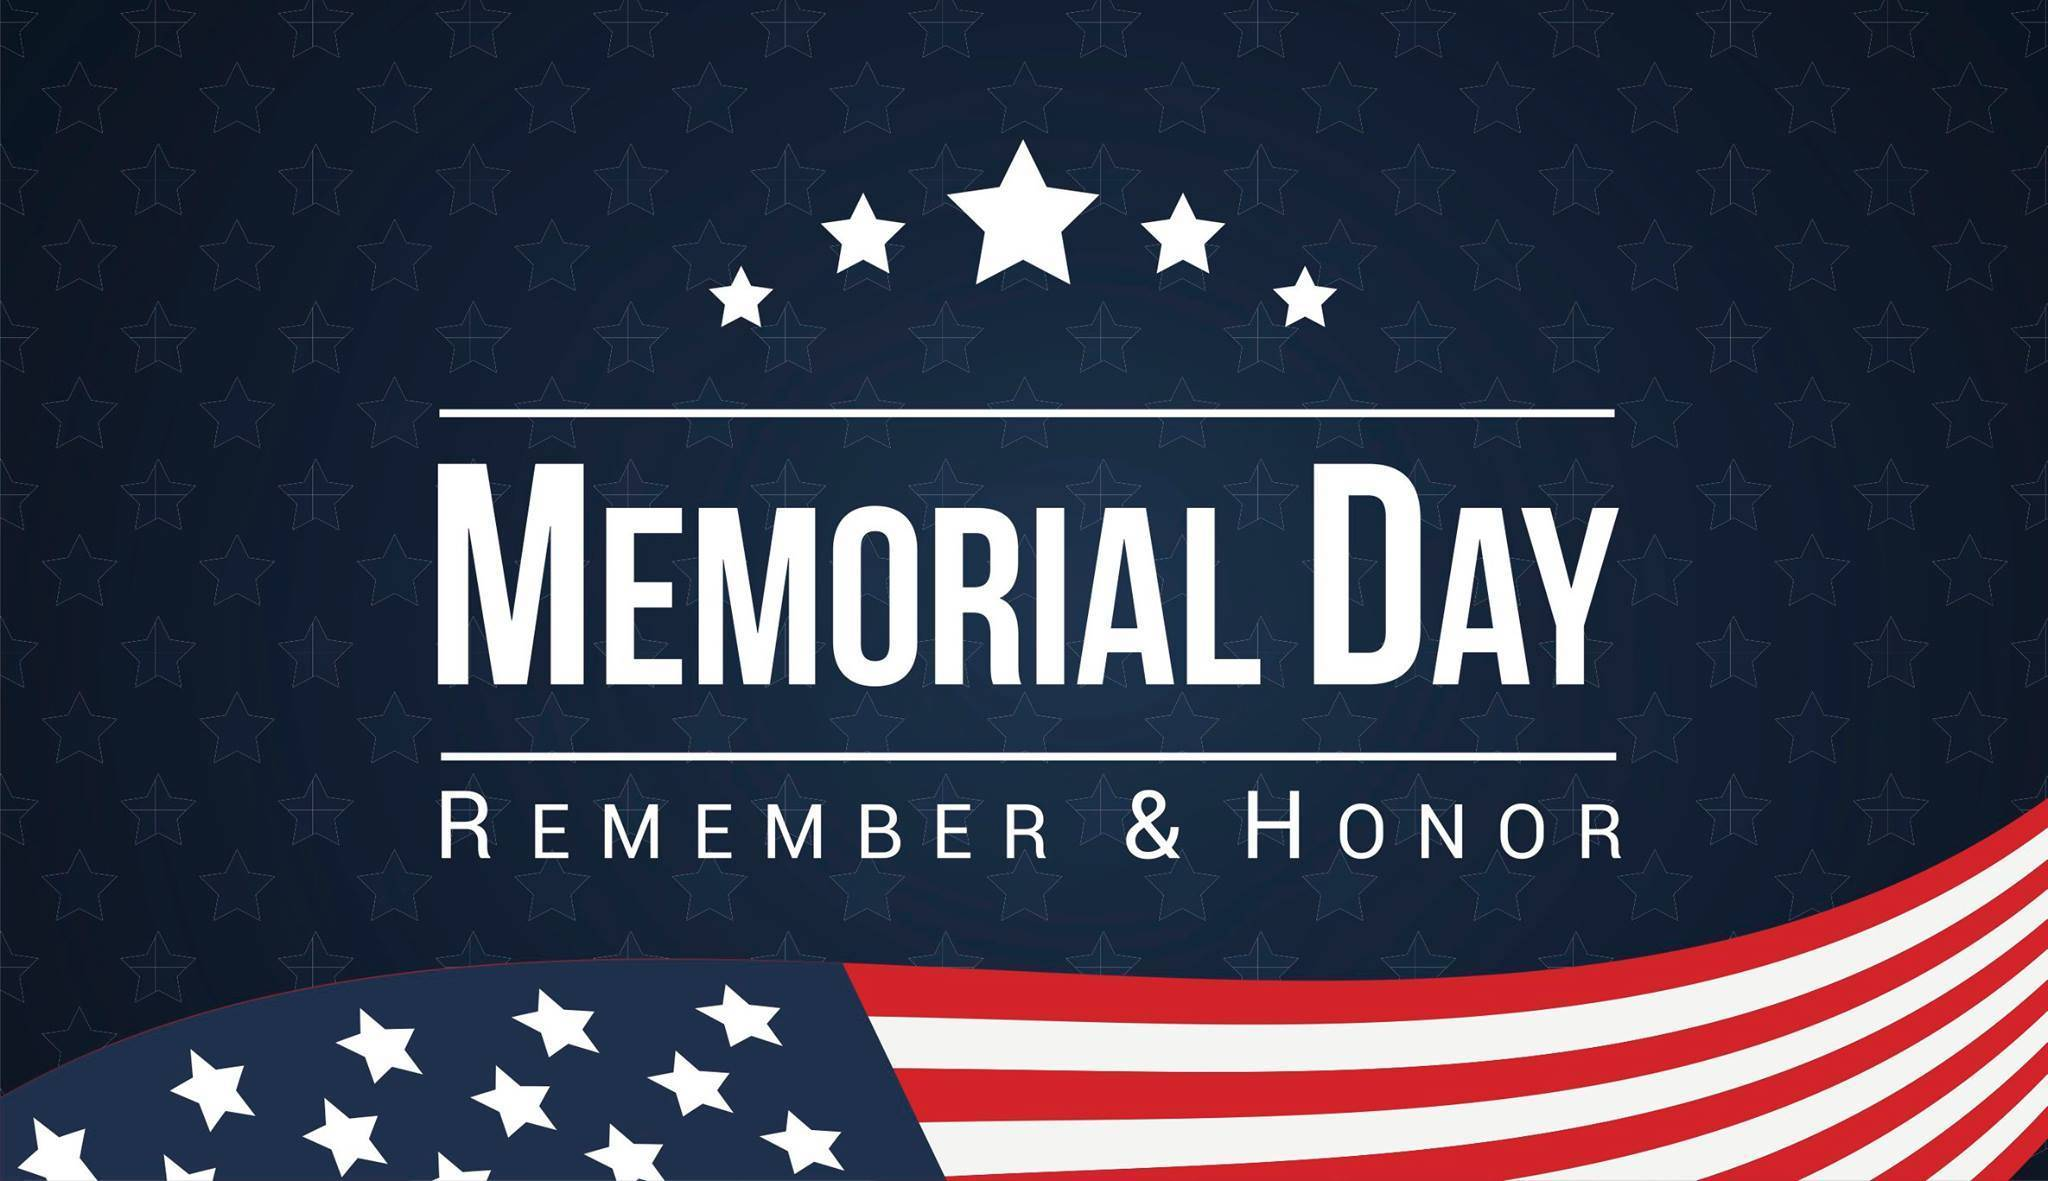 Dr Clinebell Decatur GA Orthodontics we remember memorial-day